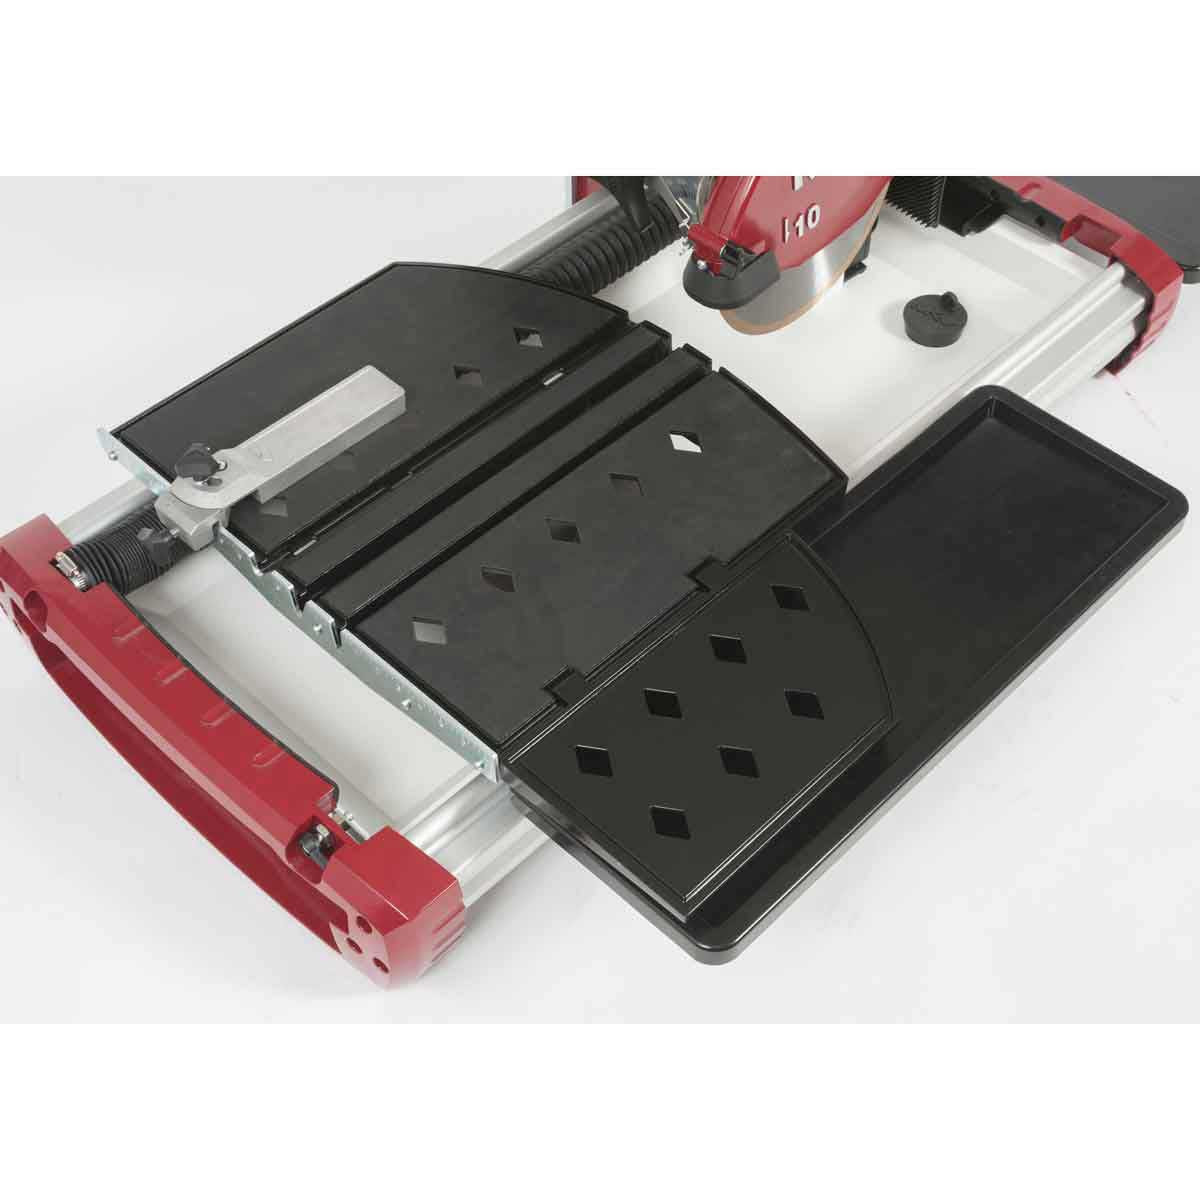 MK TX-4 tile saw side extension table